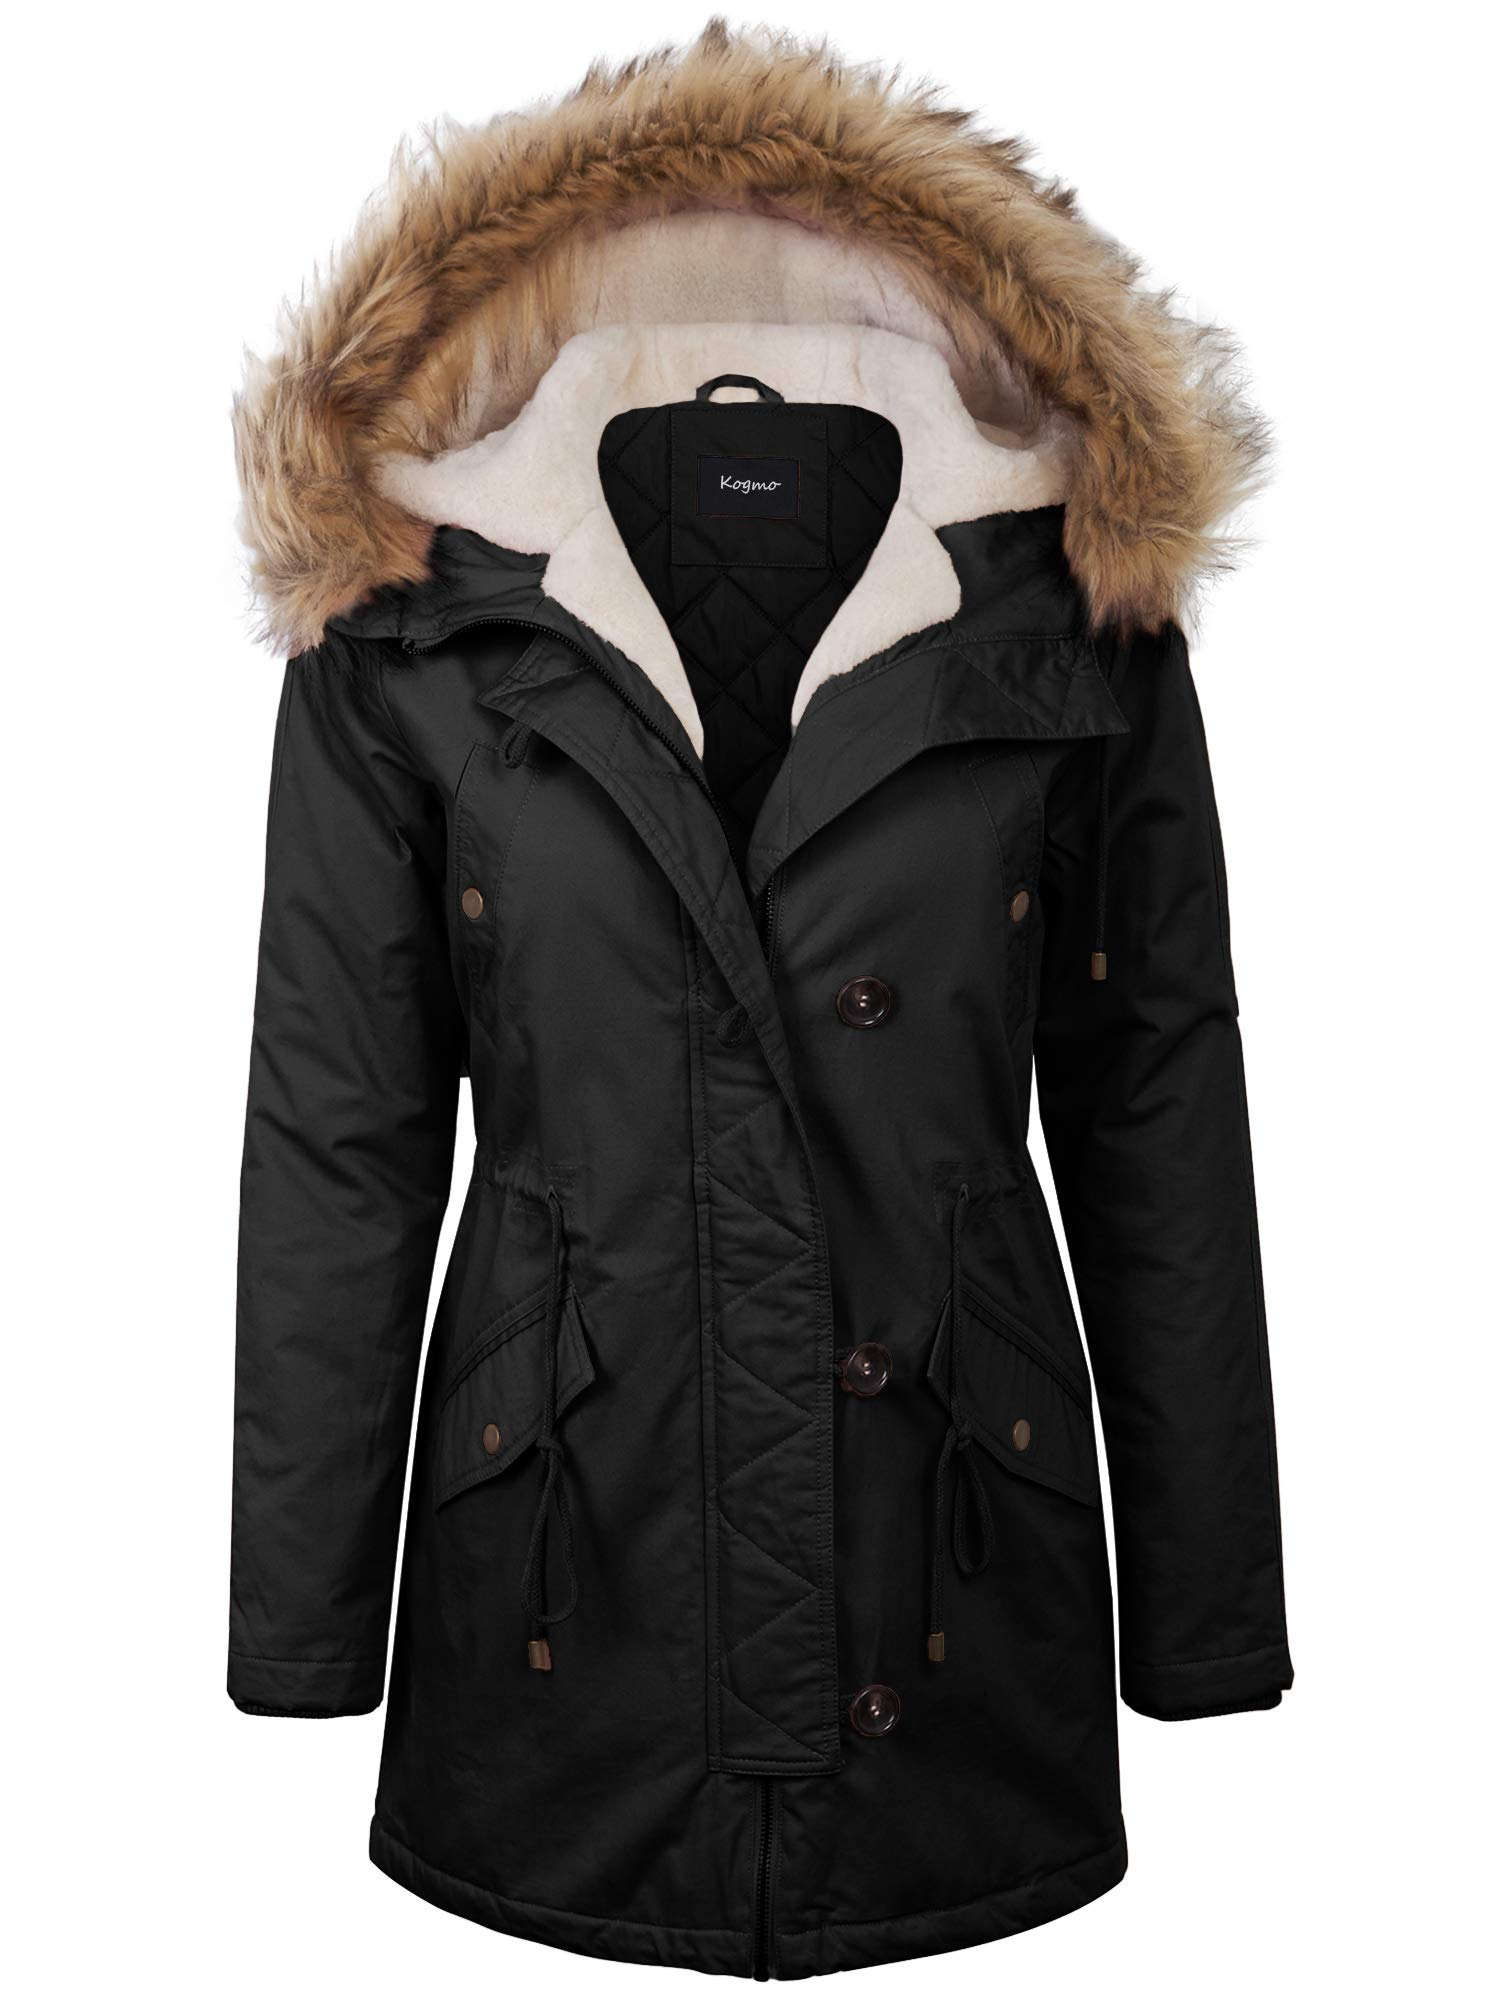 KOGMO Womens Long Anorak Coat Fur Trim Hoodie Jacket with Fuax Fur Lined-S-Black by KOGMO